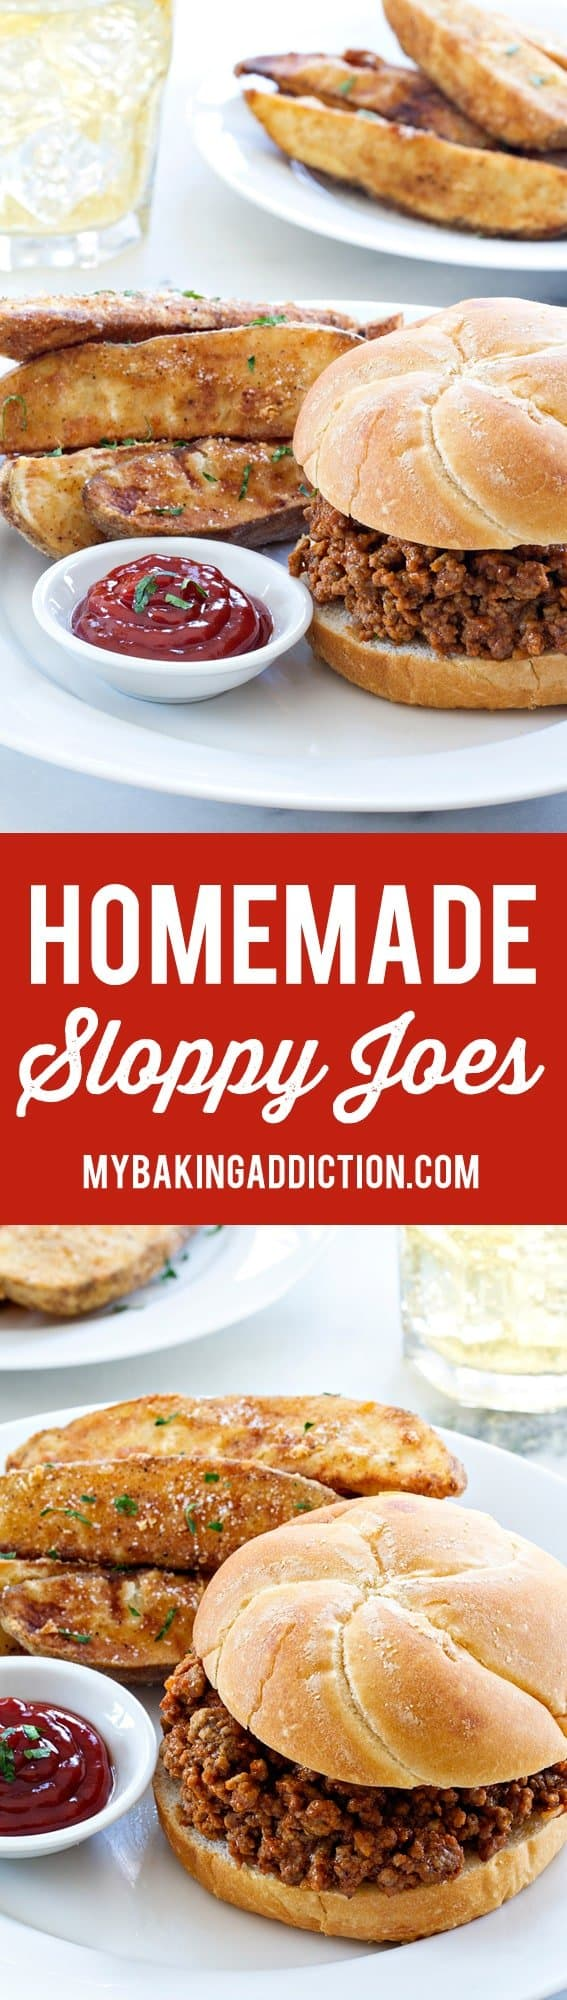 Homemade Sloppy Joes couldn't be easier or more delicious. Serve them up with a salad or homemade fires for the perfect weeknight meal!